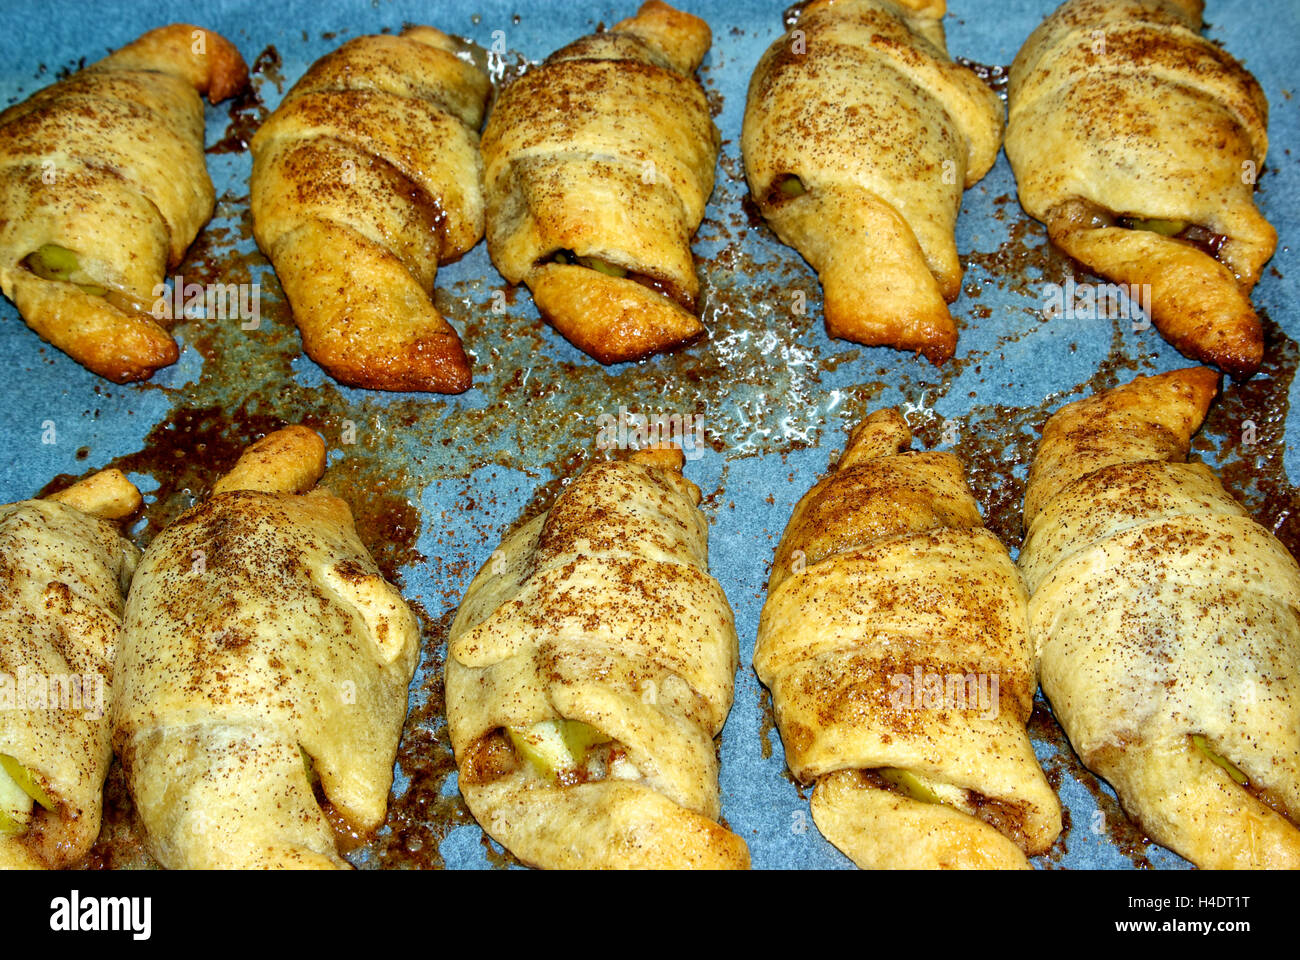 Apple cinnamon spice turnover pastries baking sheet - Stock Image